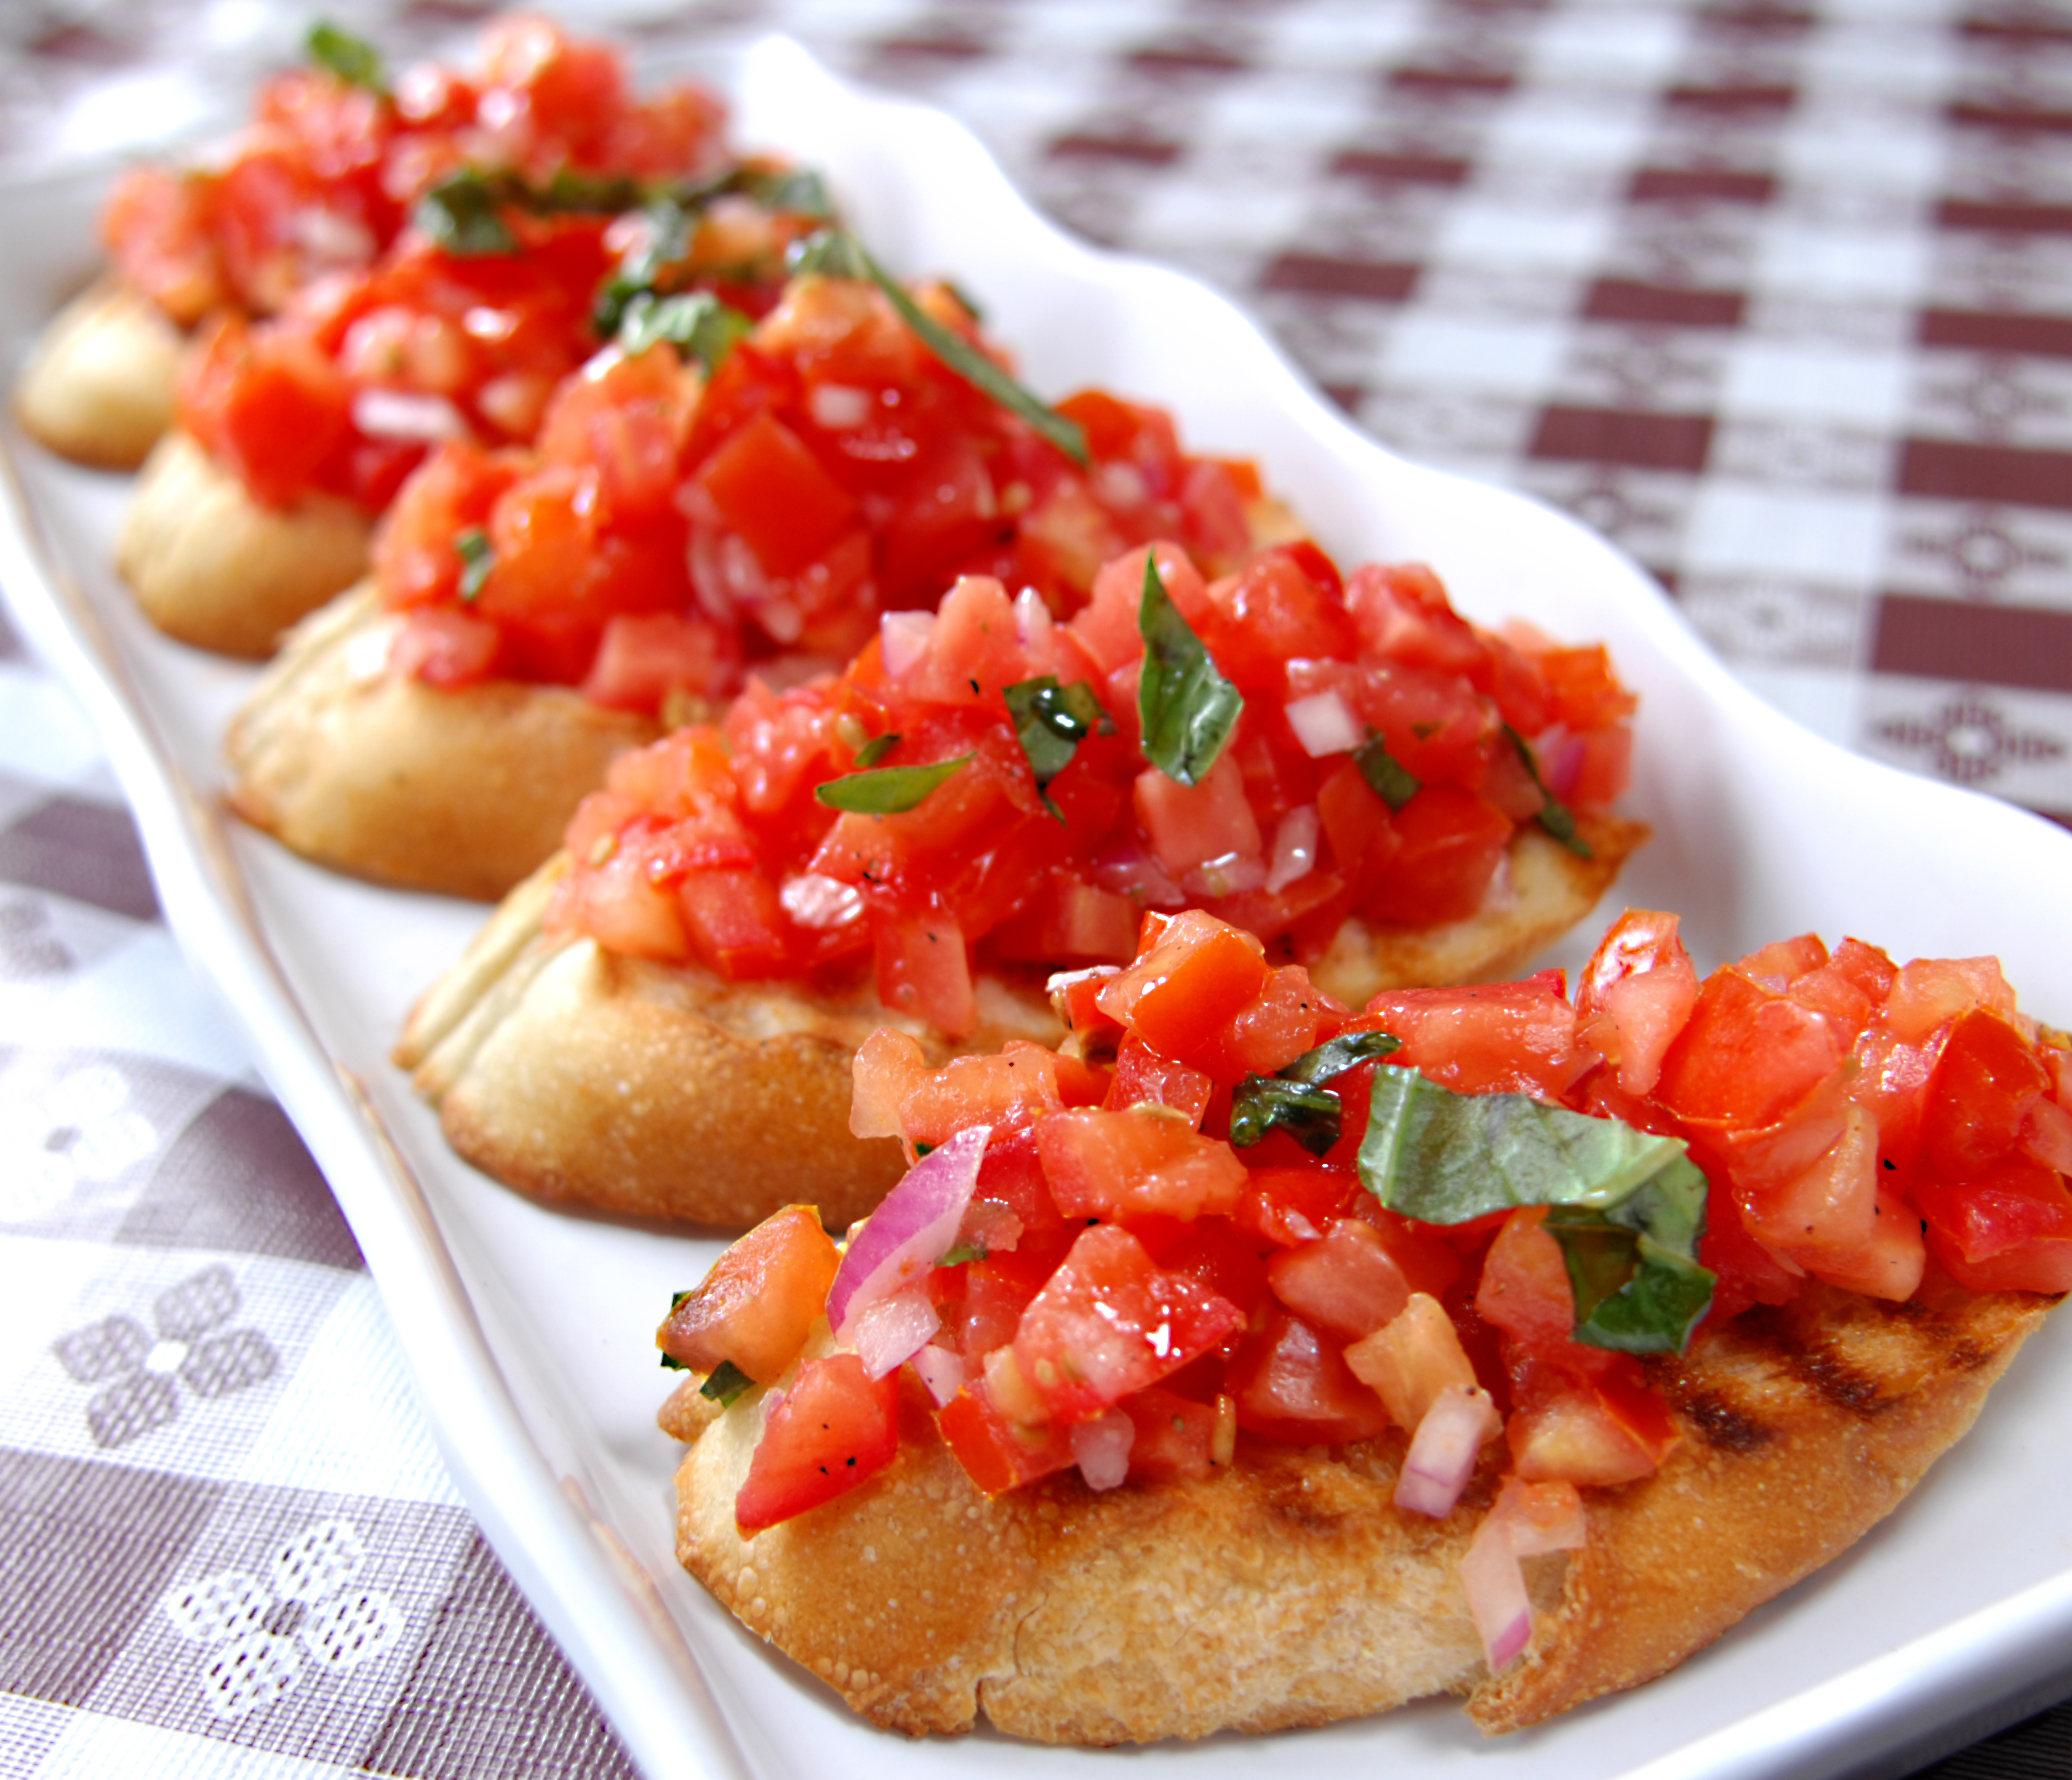 Birch Community Services | Bruschetta - Birch Community Services